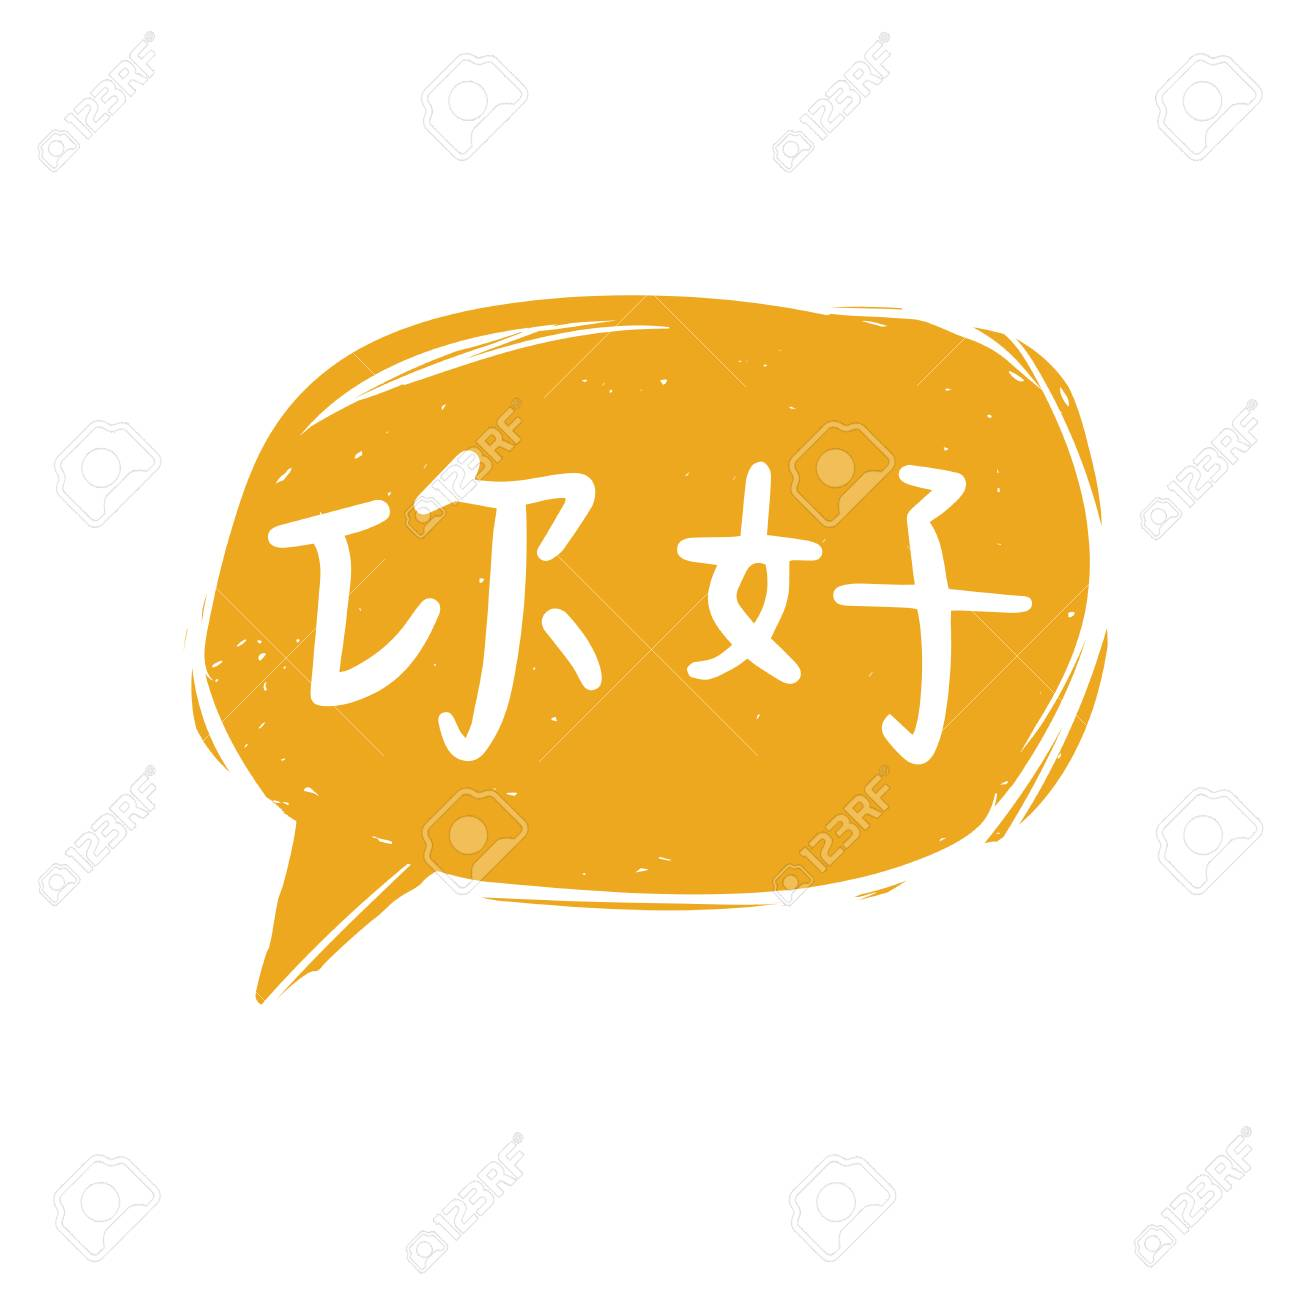 Ni Hao hand lettering phrase translated from Chinese Hello in speech bubble - 108444440